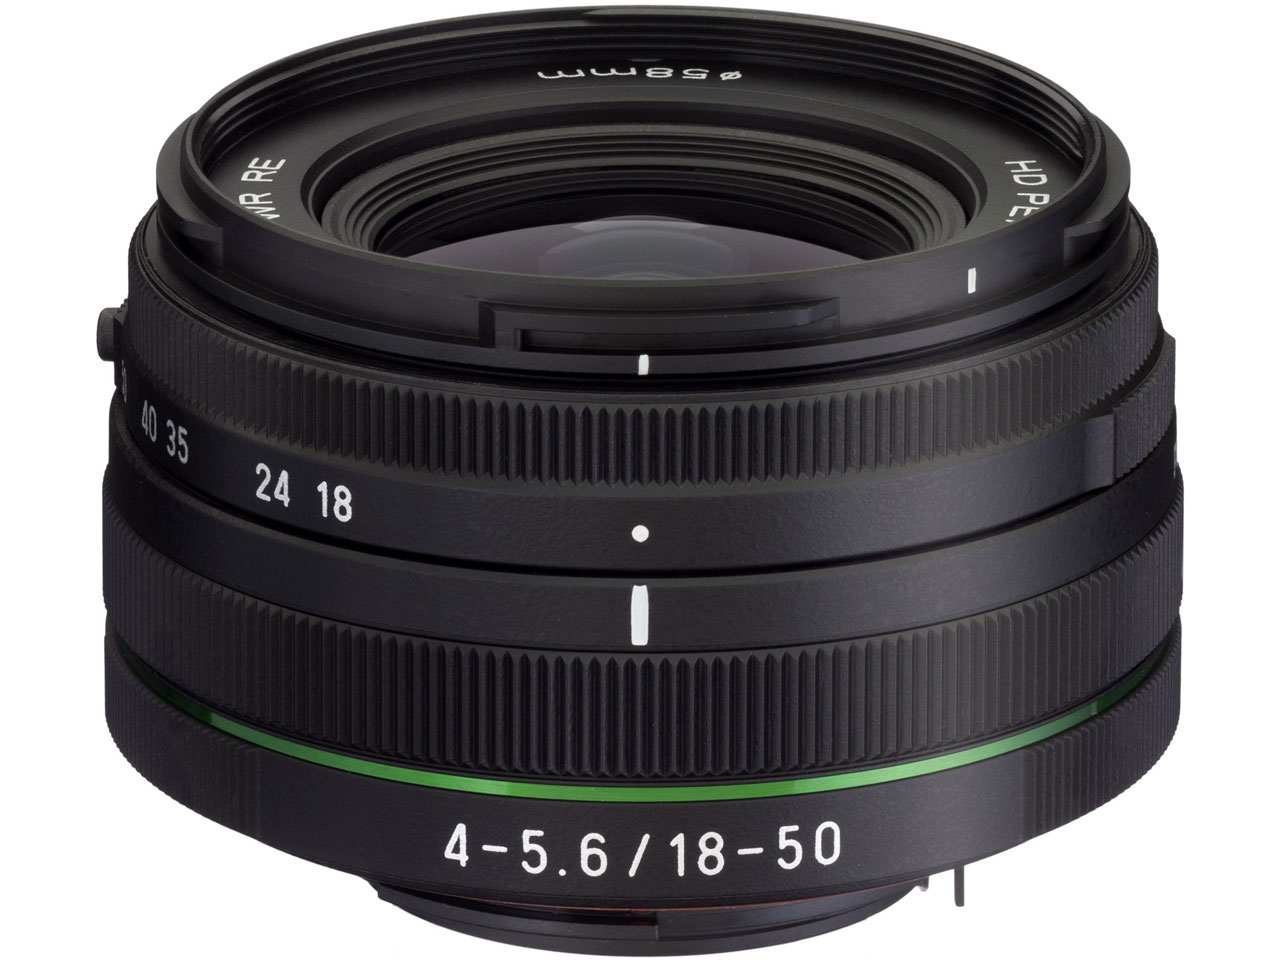 HD PENTAX-DA 18-50mmF4-5.6 DC WR RE の製品画像